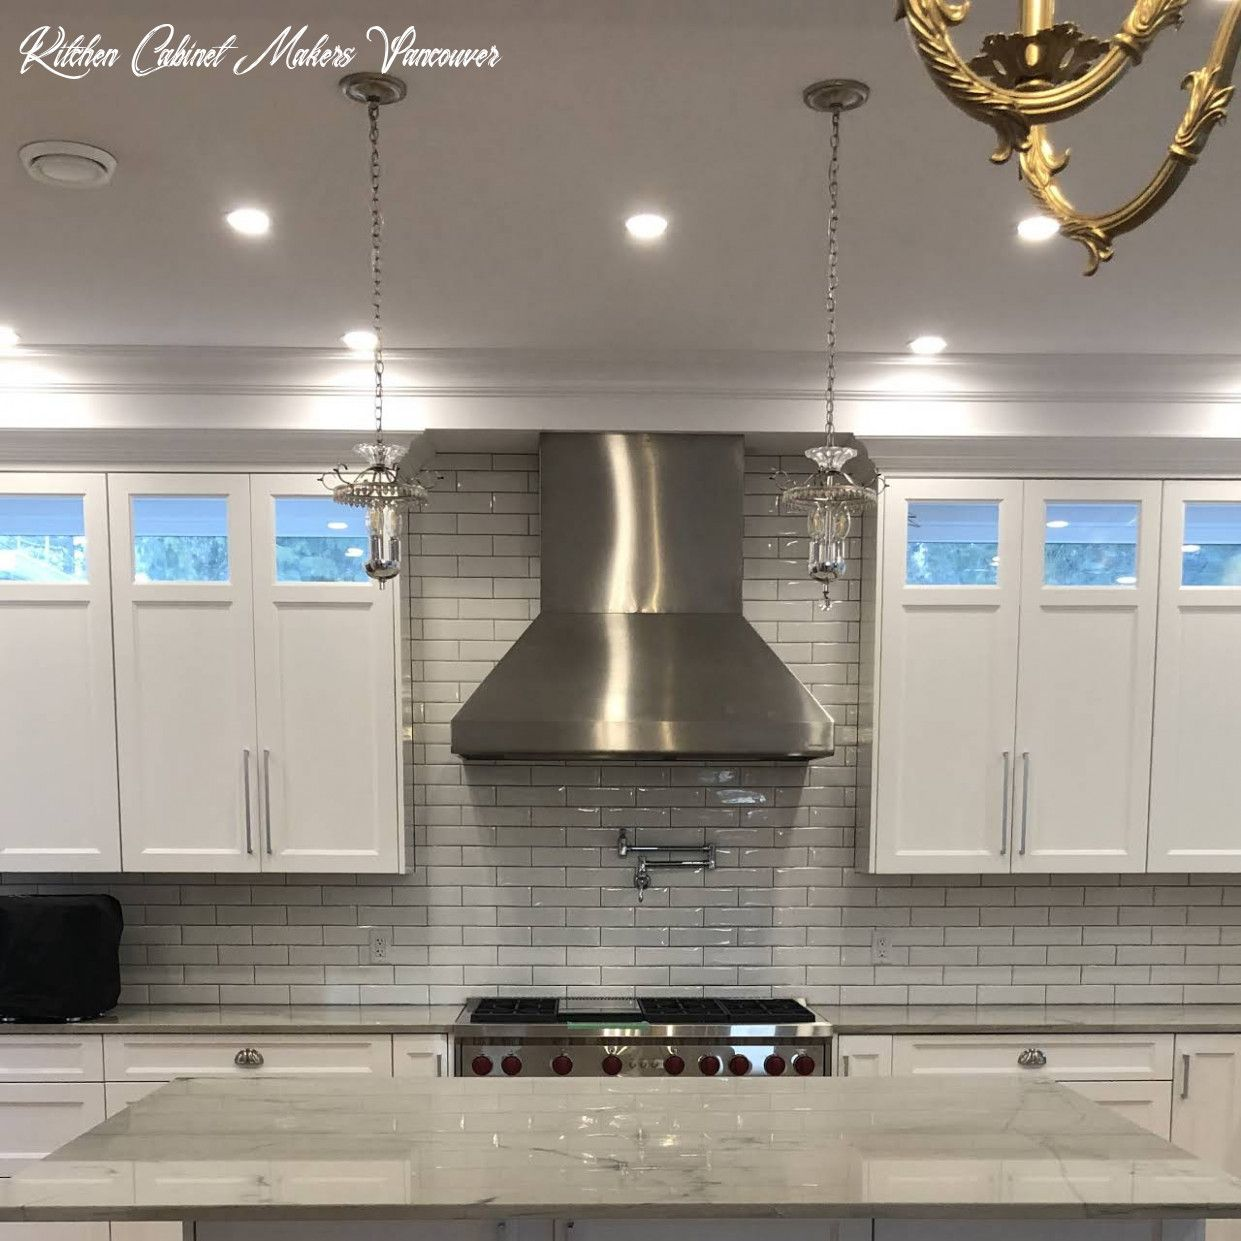 Kitchen Cabinet Makers Vancouver In 2020 Kitchen Cabinet Makers Kitchen Remodel Cabinet Makers